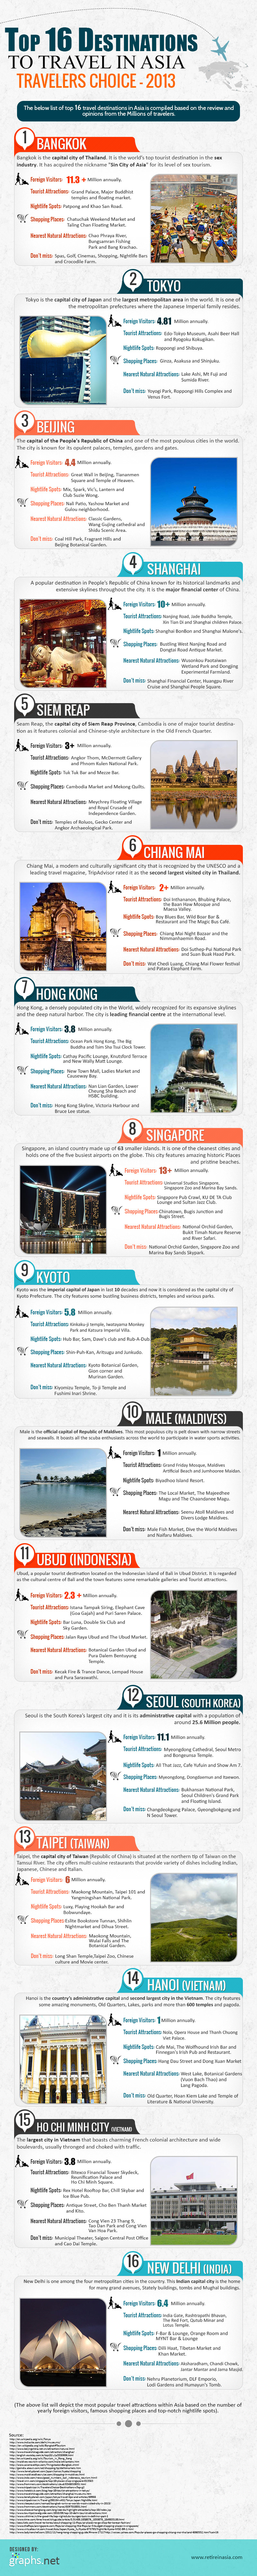 Top-16-destinations-to-travel-in-Asia1